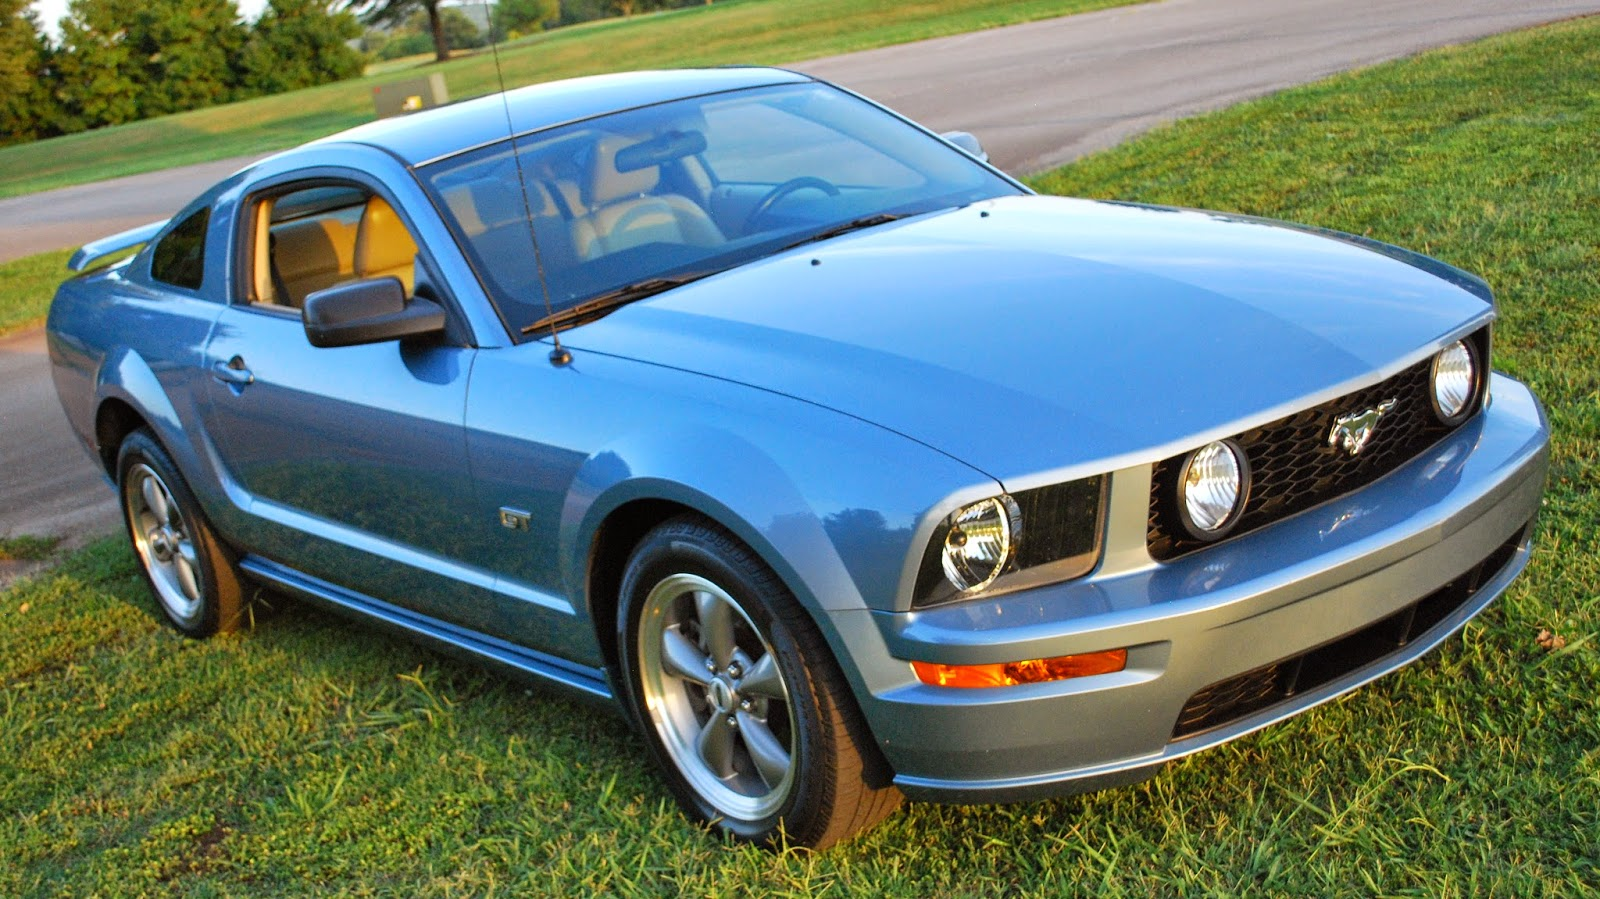 2006 ford mustang gt windveil blue for sale huntsville al. Black Bedroom Furniture Sets. Home Design Ideas